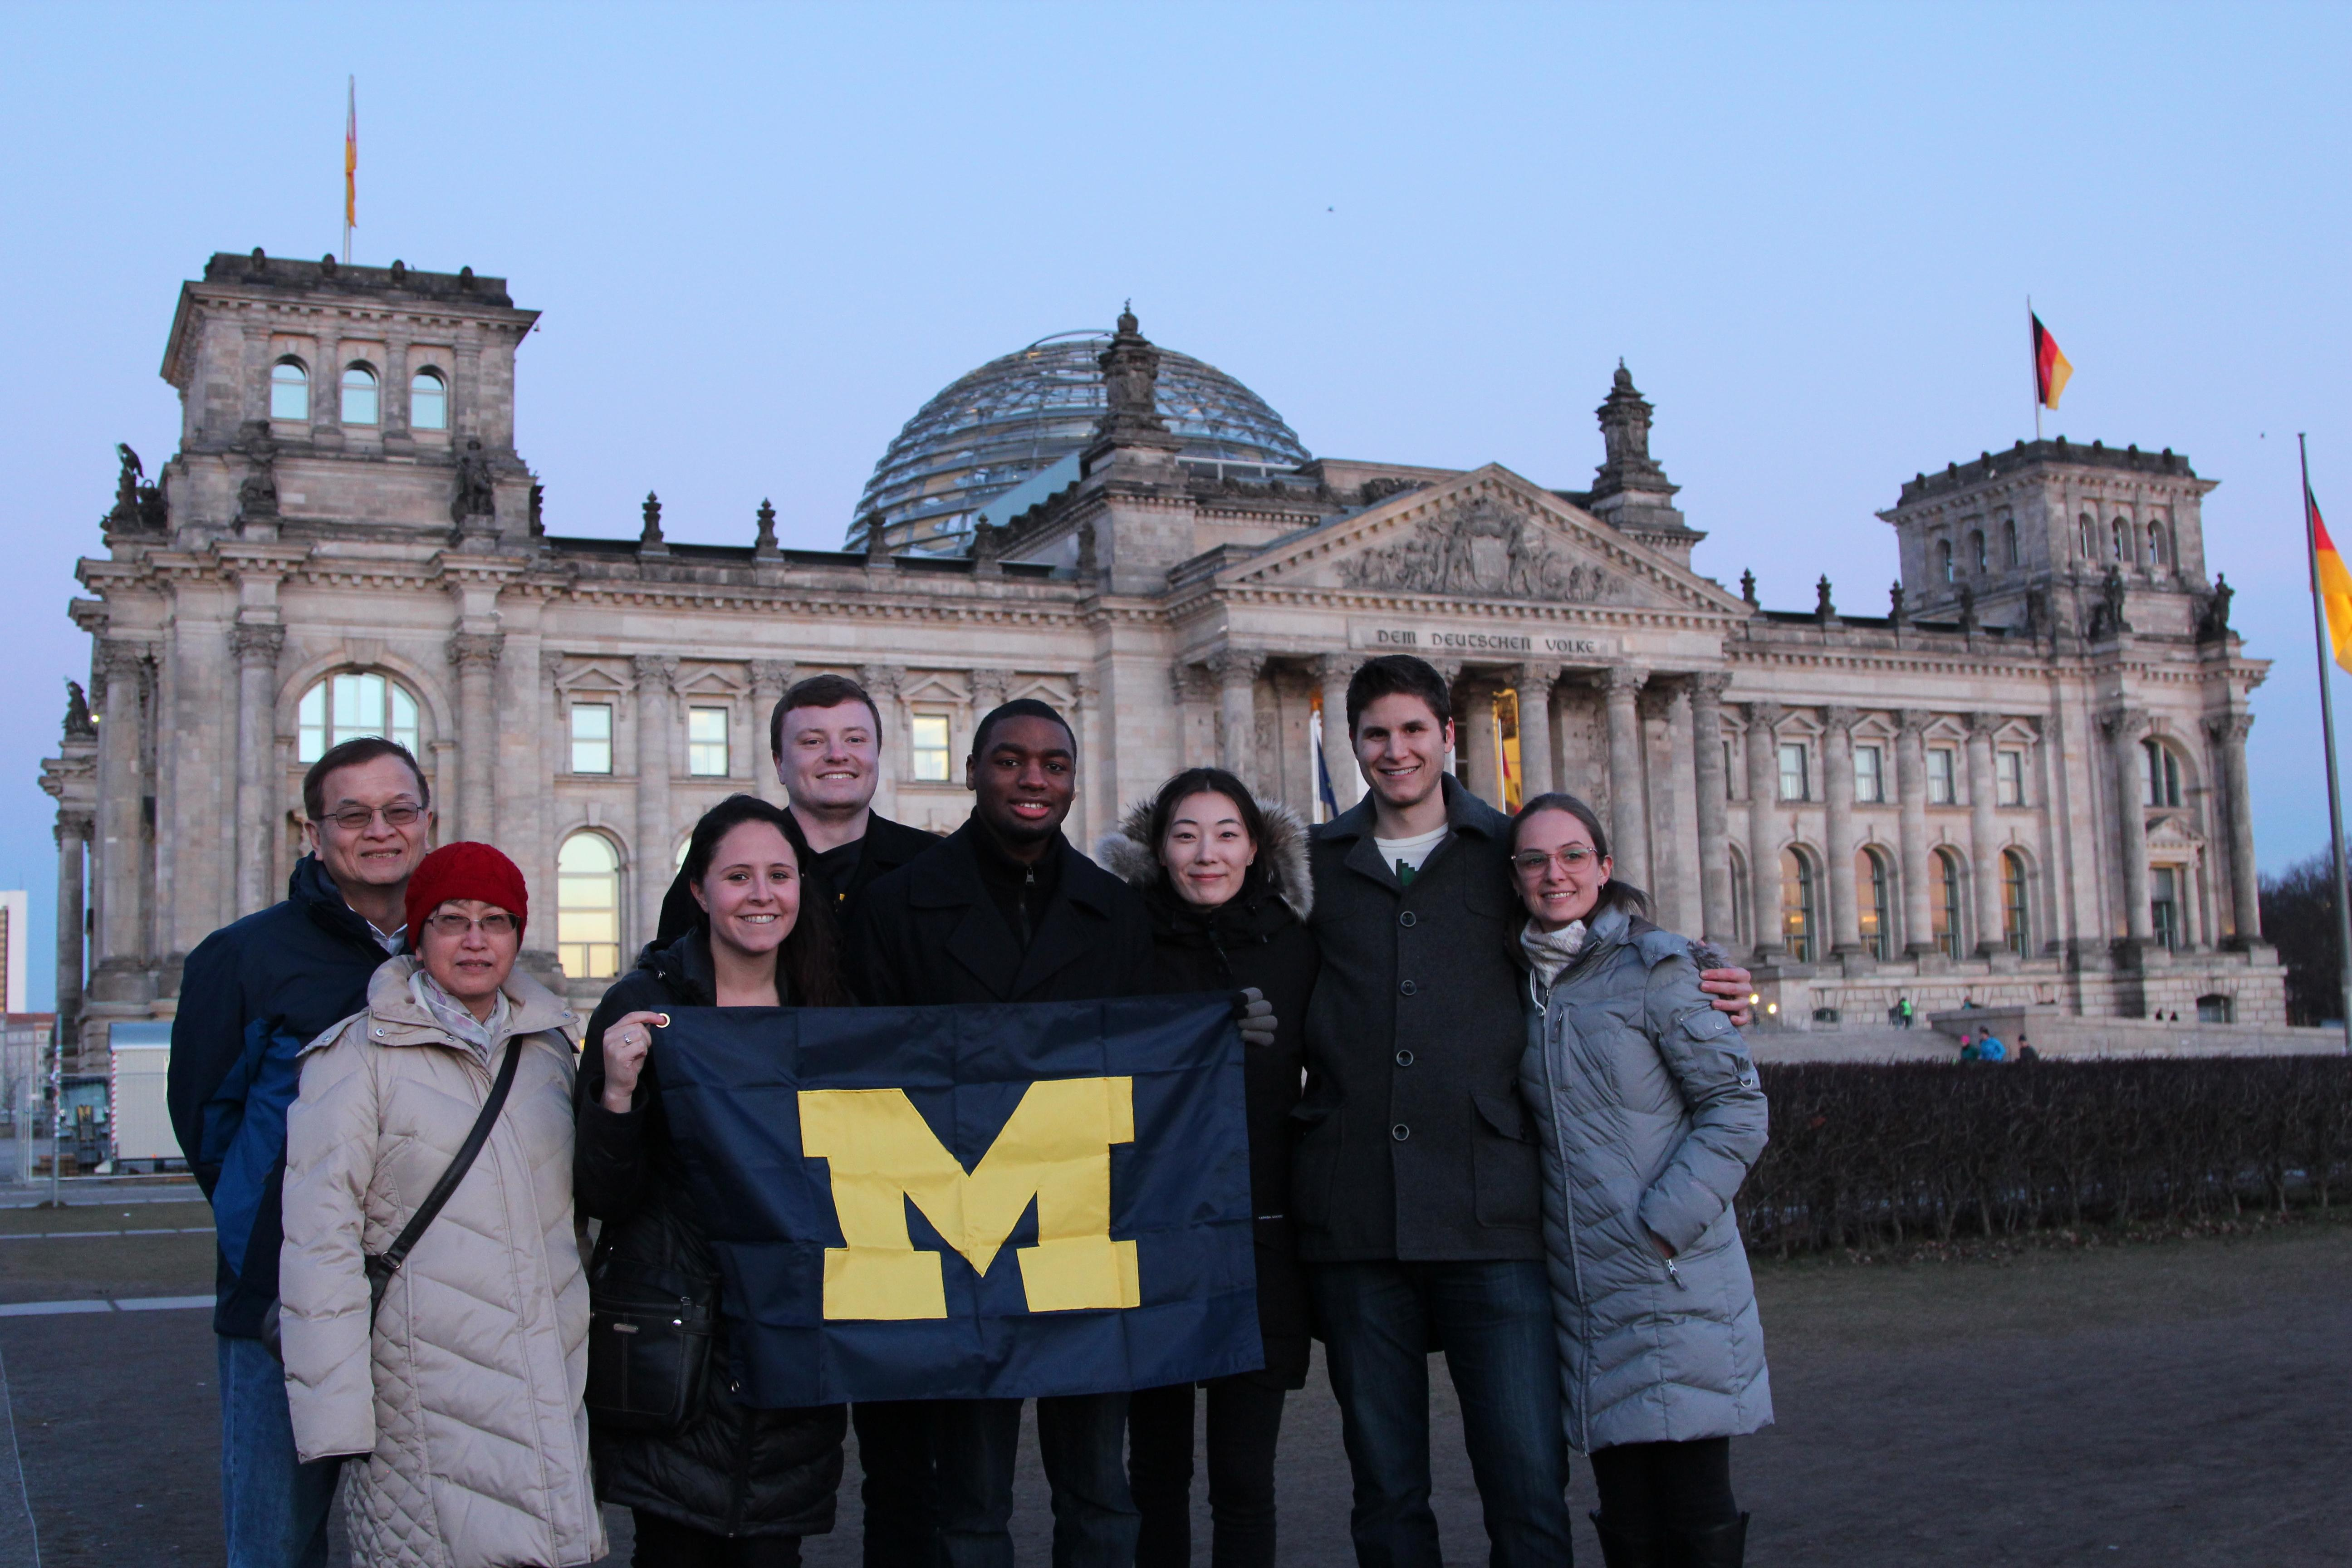 Left to right: Jersey Liang, Ling Hung, Jasmine Oesch, Peter Geppert, Quian Callender, Constance Yang, John Crist, and Andrea Arathoon outside the Reichstag building in Berlin